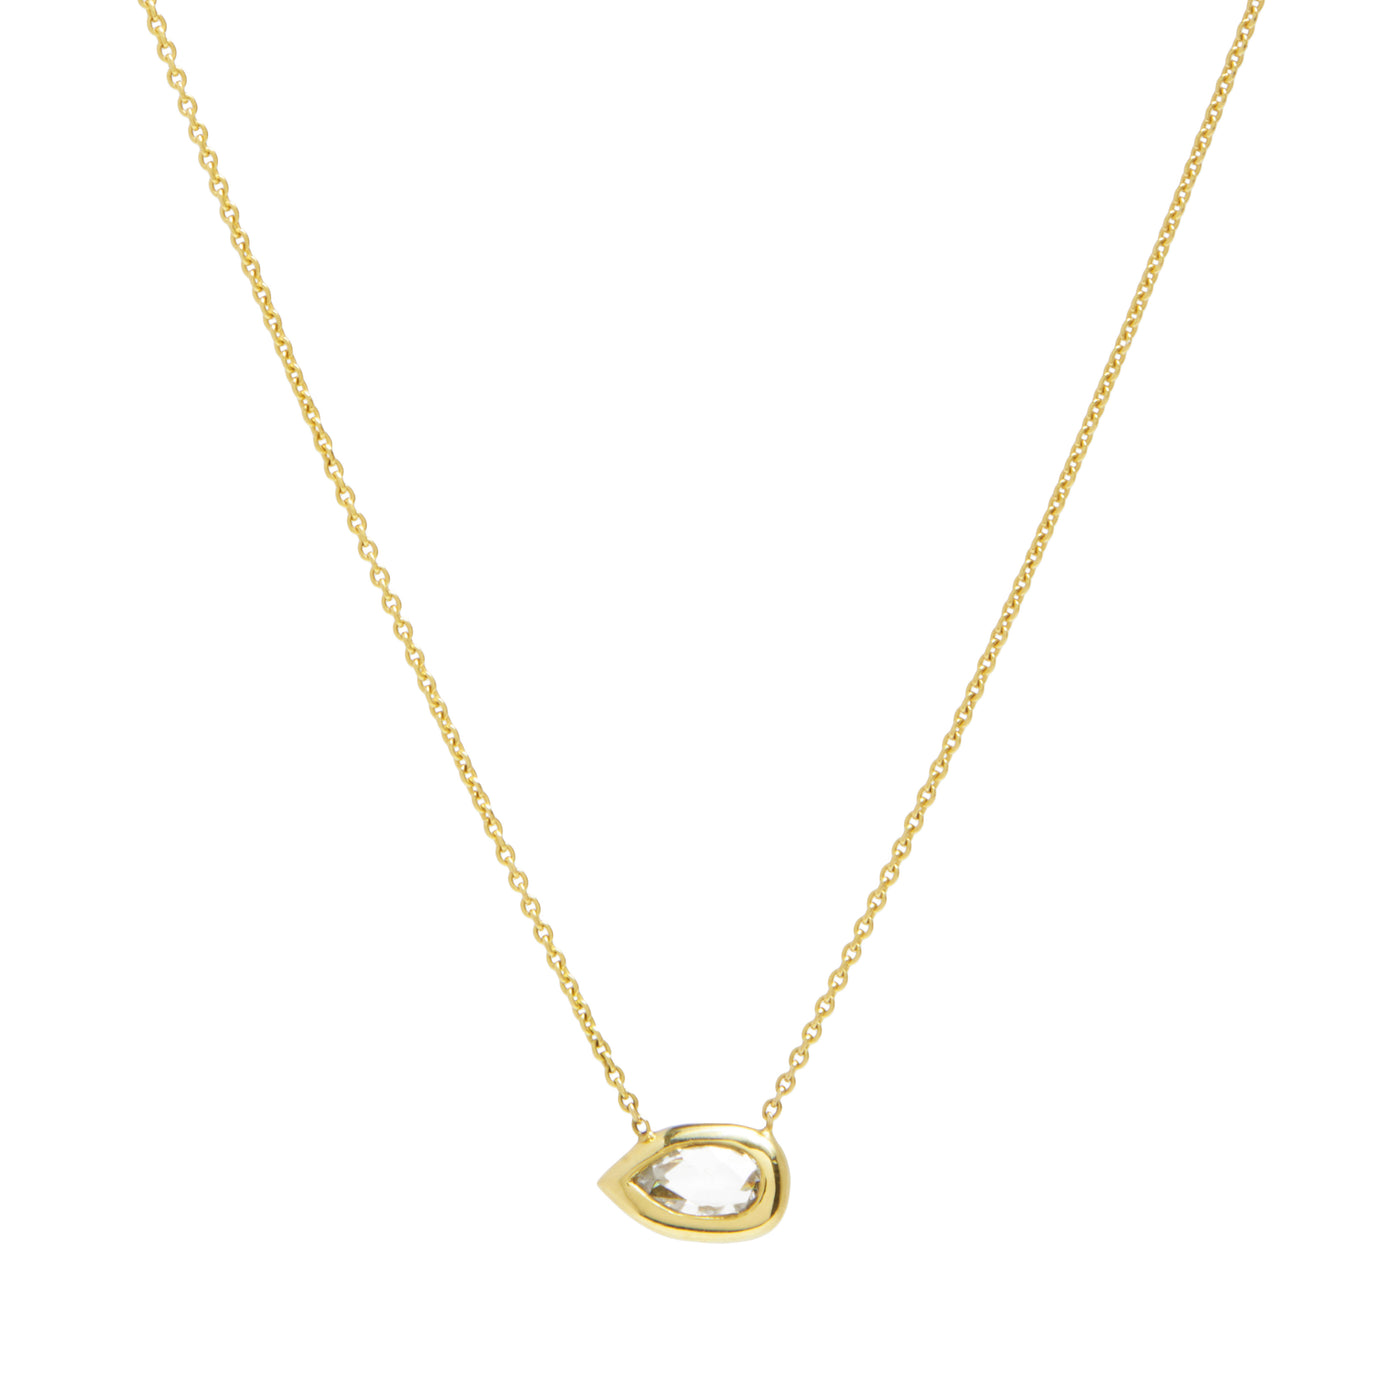 rose cut pear diamond shape necklace